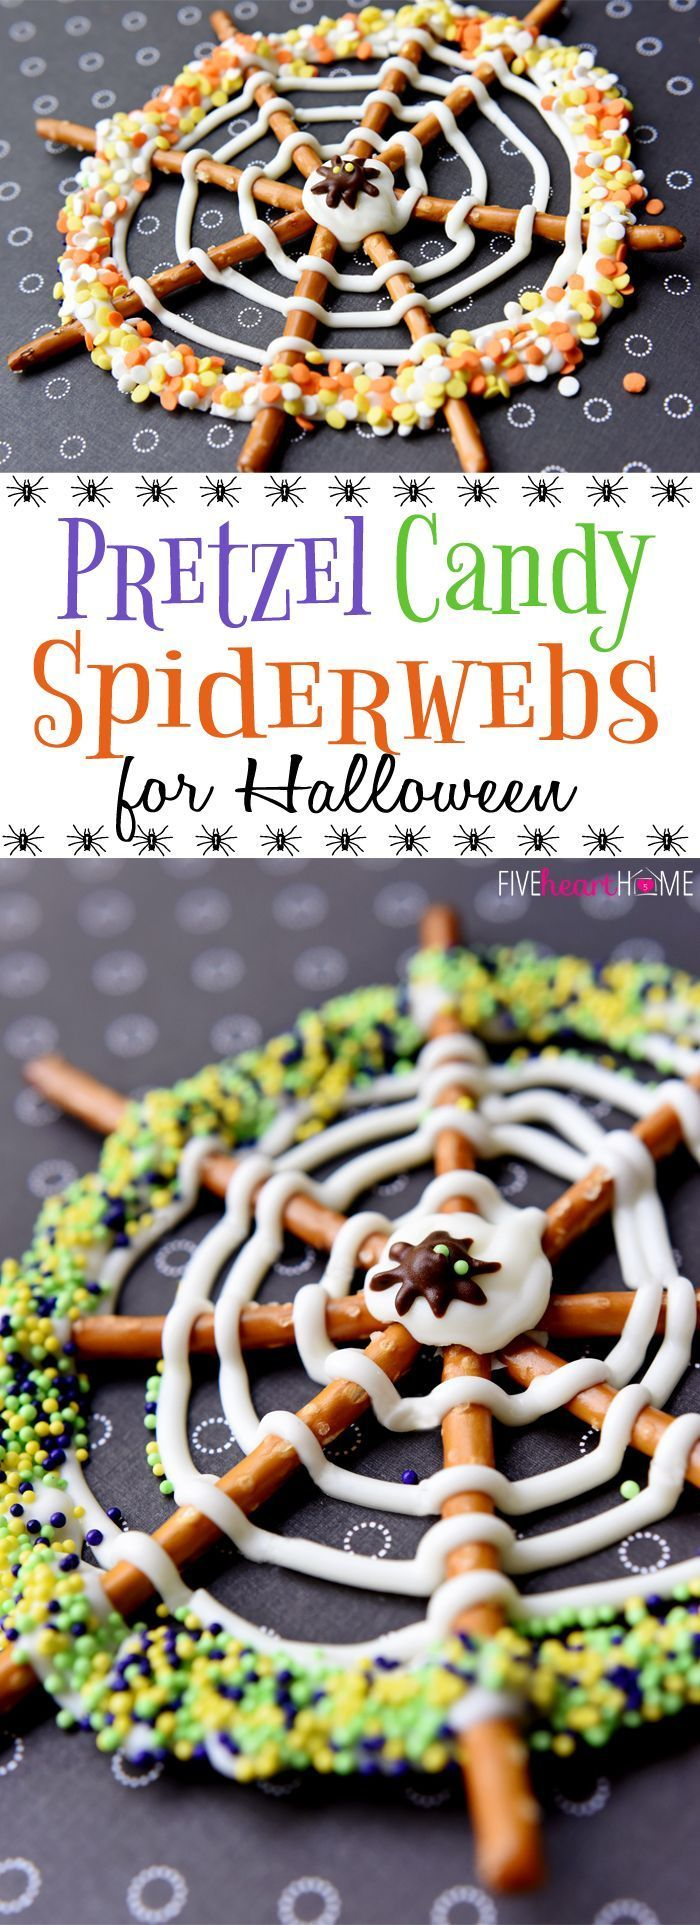 249 best Halloween Food Ideas images on Pinterest